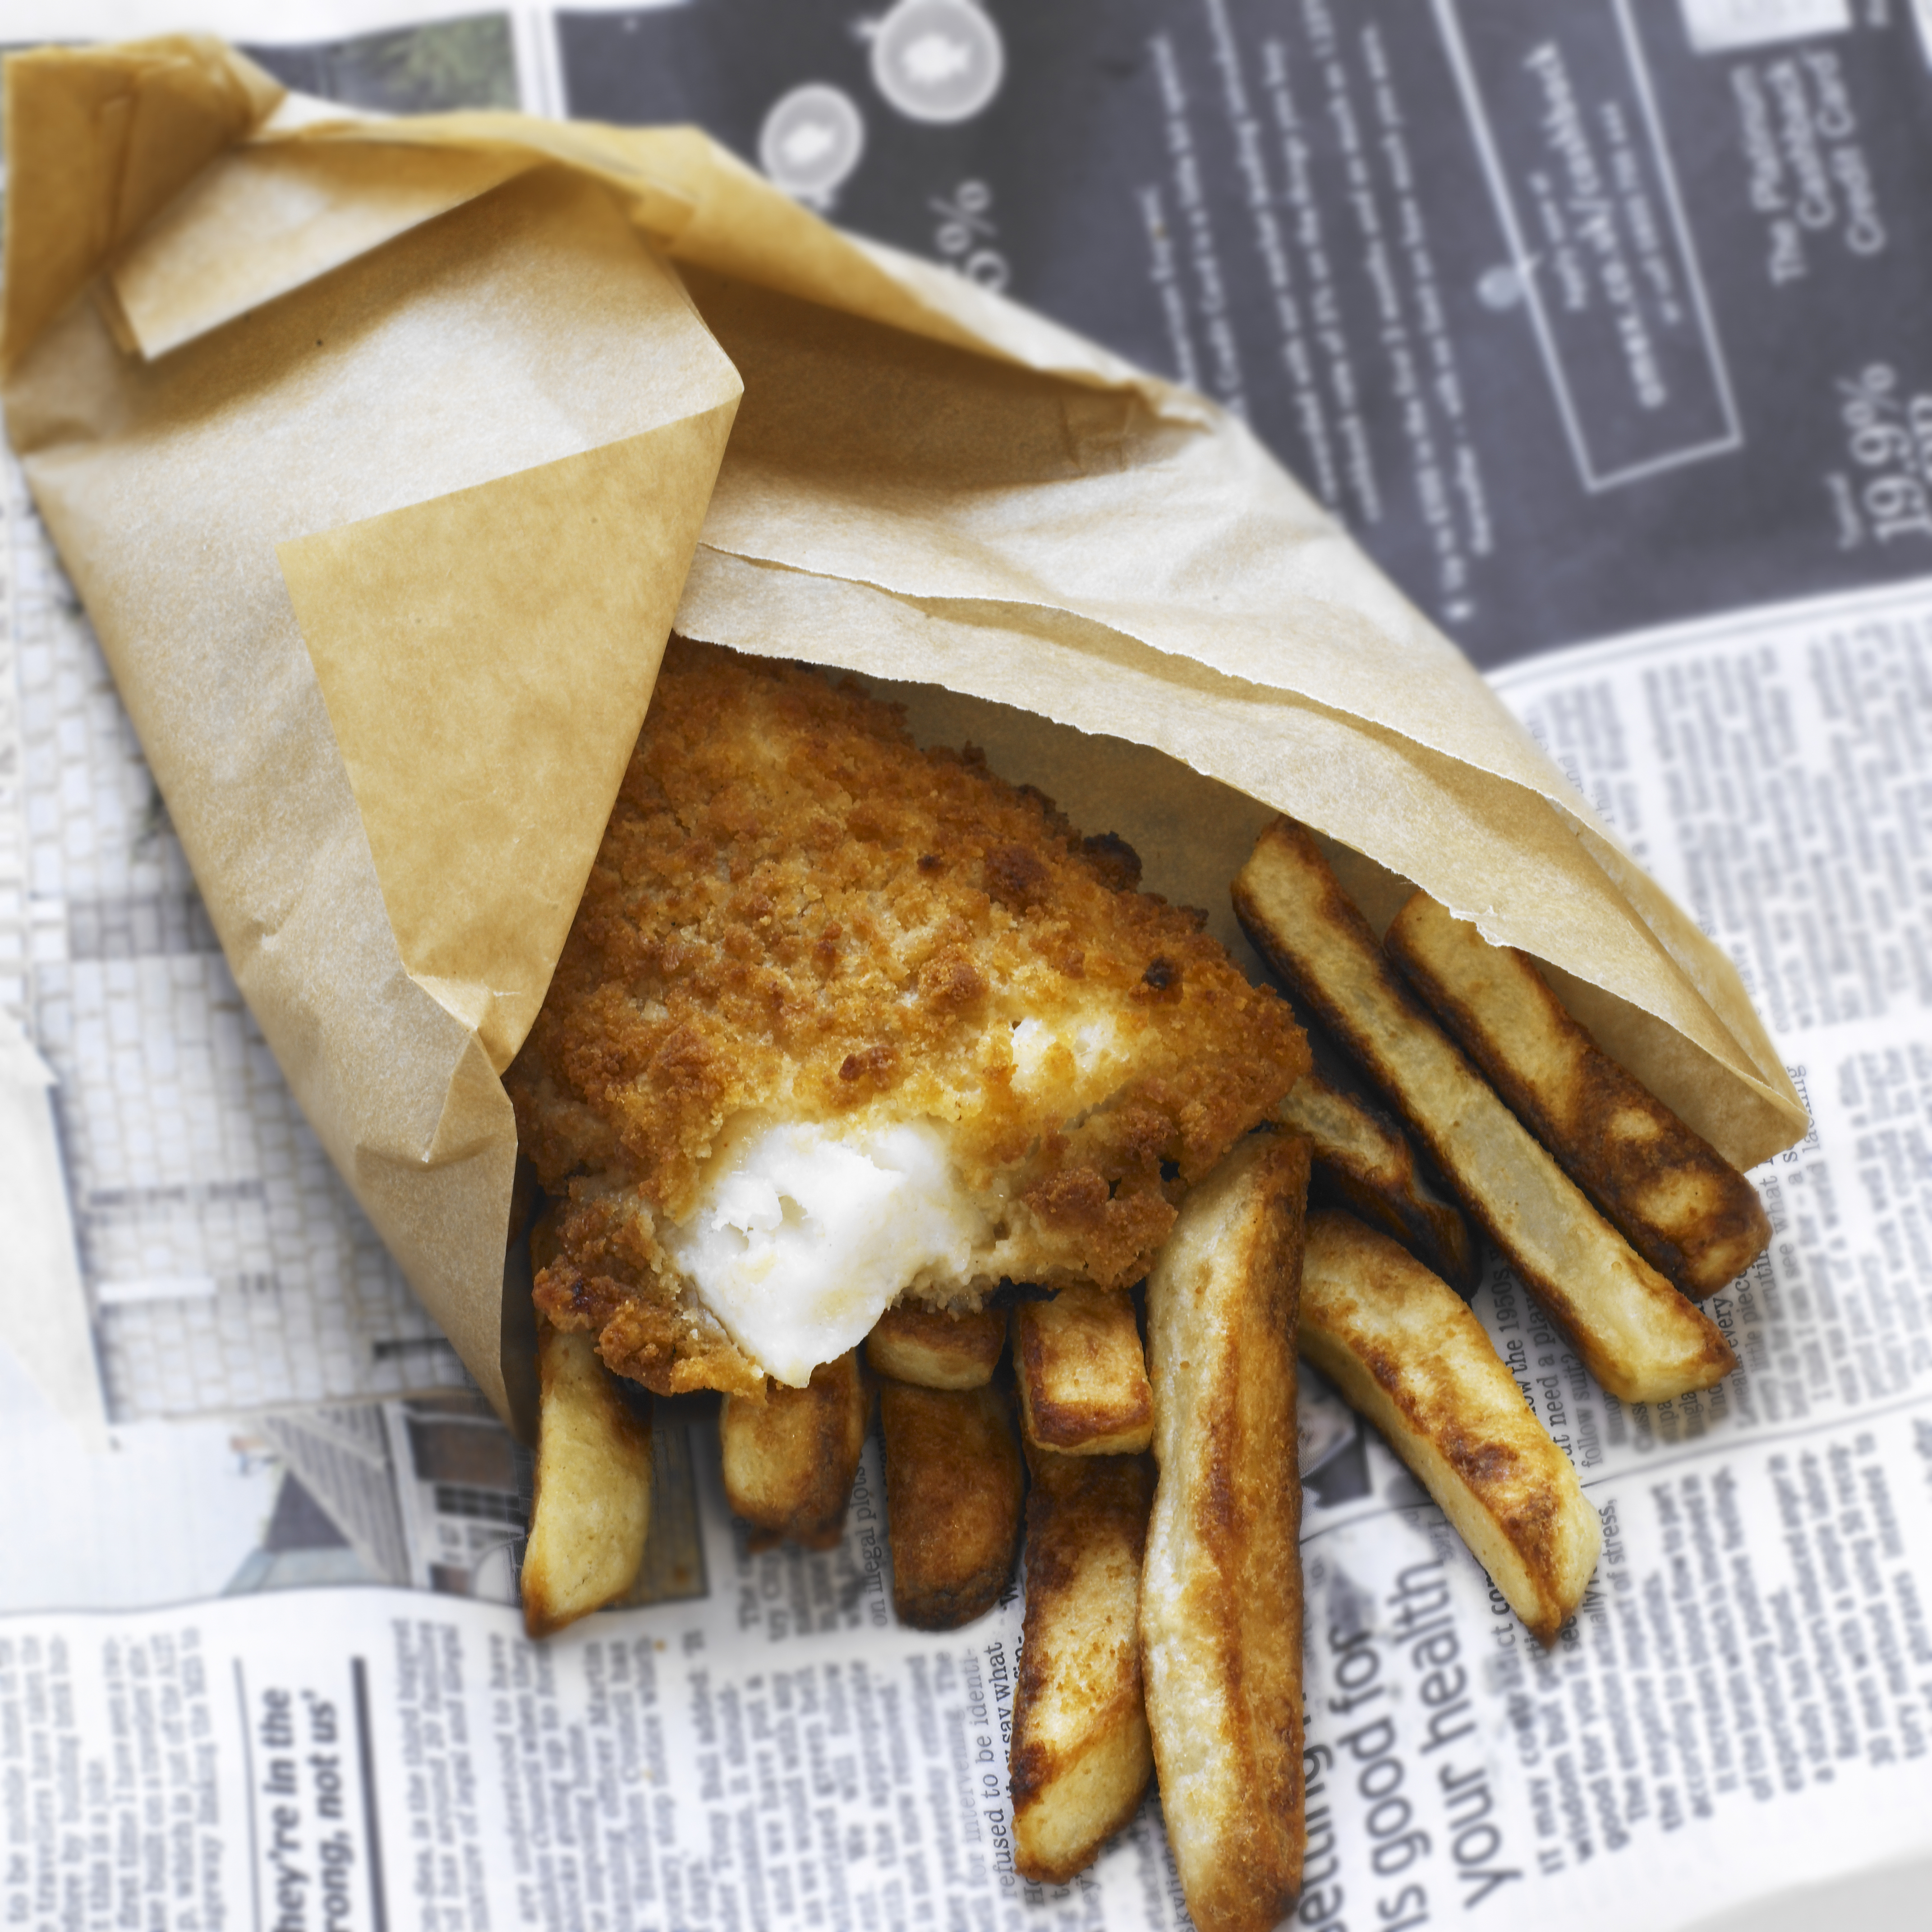 The discovery of increased numbers of squid in the North Sea could affect the British fish and chip industry.